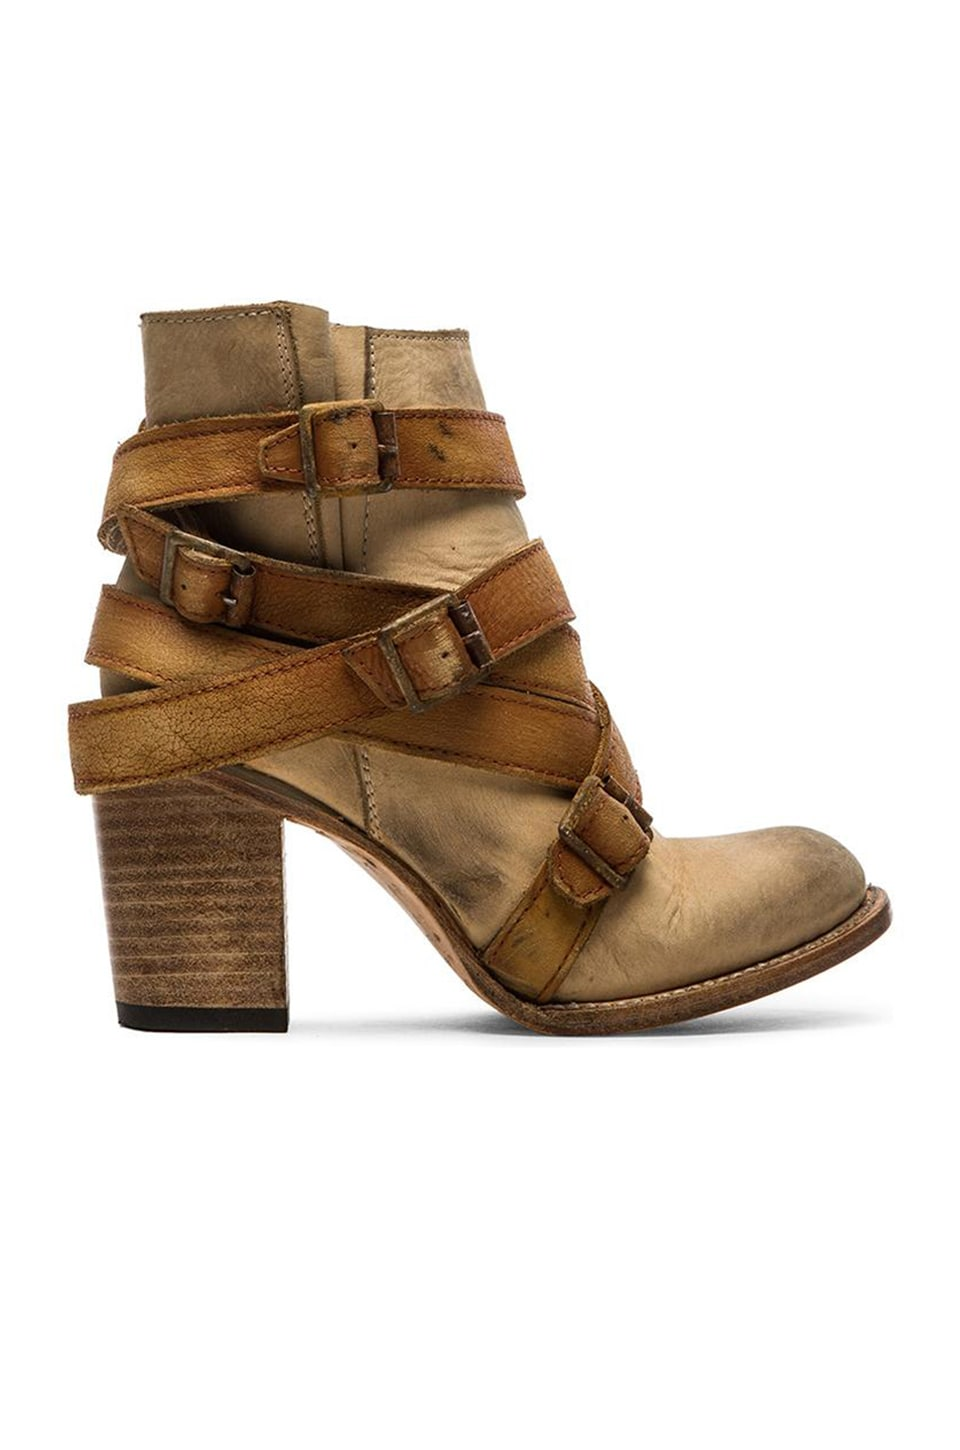 Freebird by Steven Hustle Boot in Natural Multi